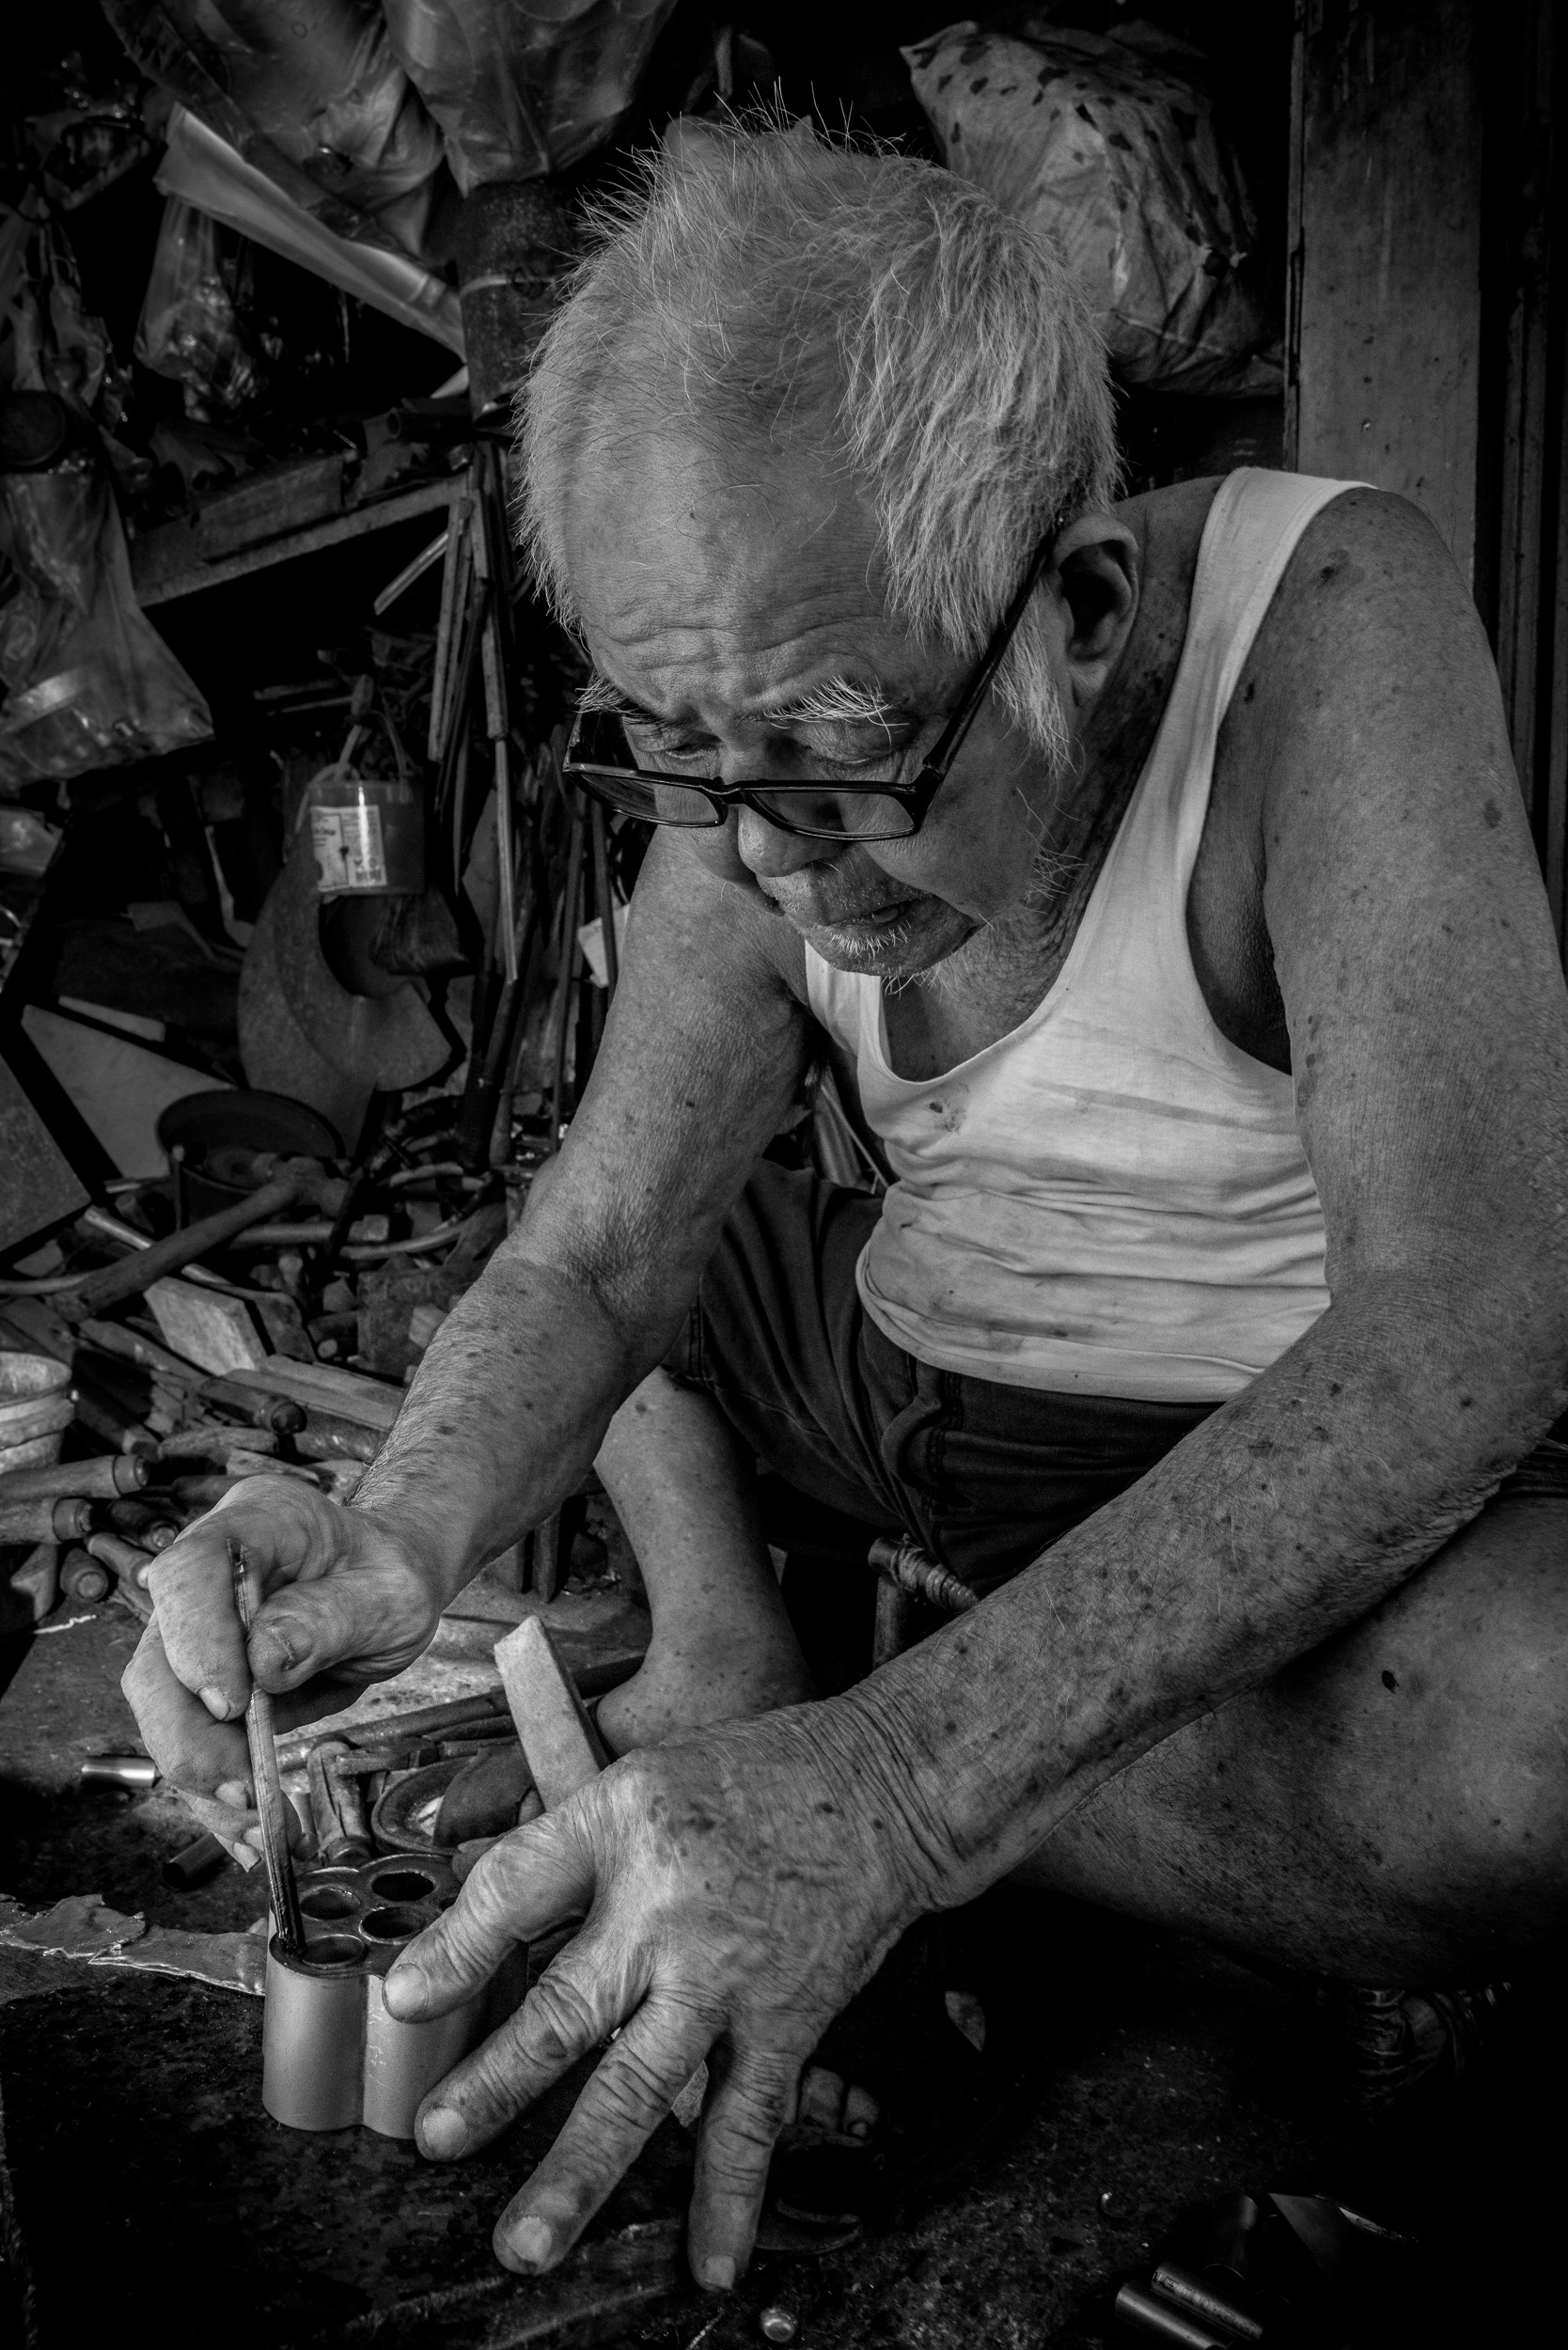 An old man making kitchenware in Kuching, Malaysia